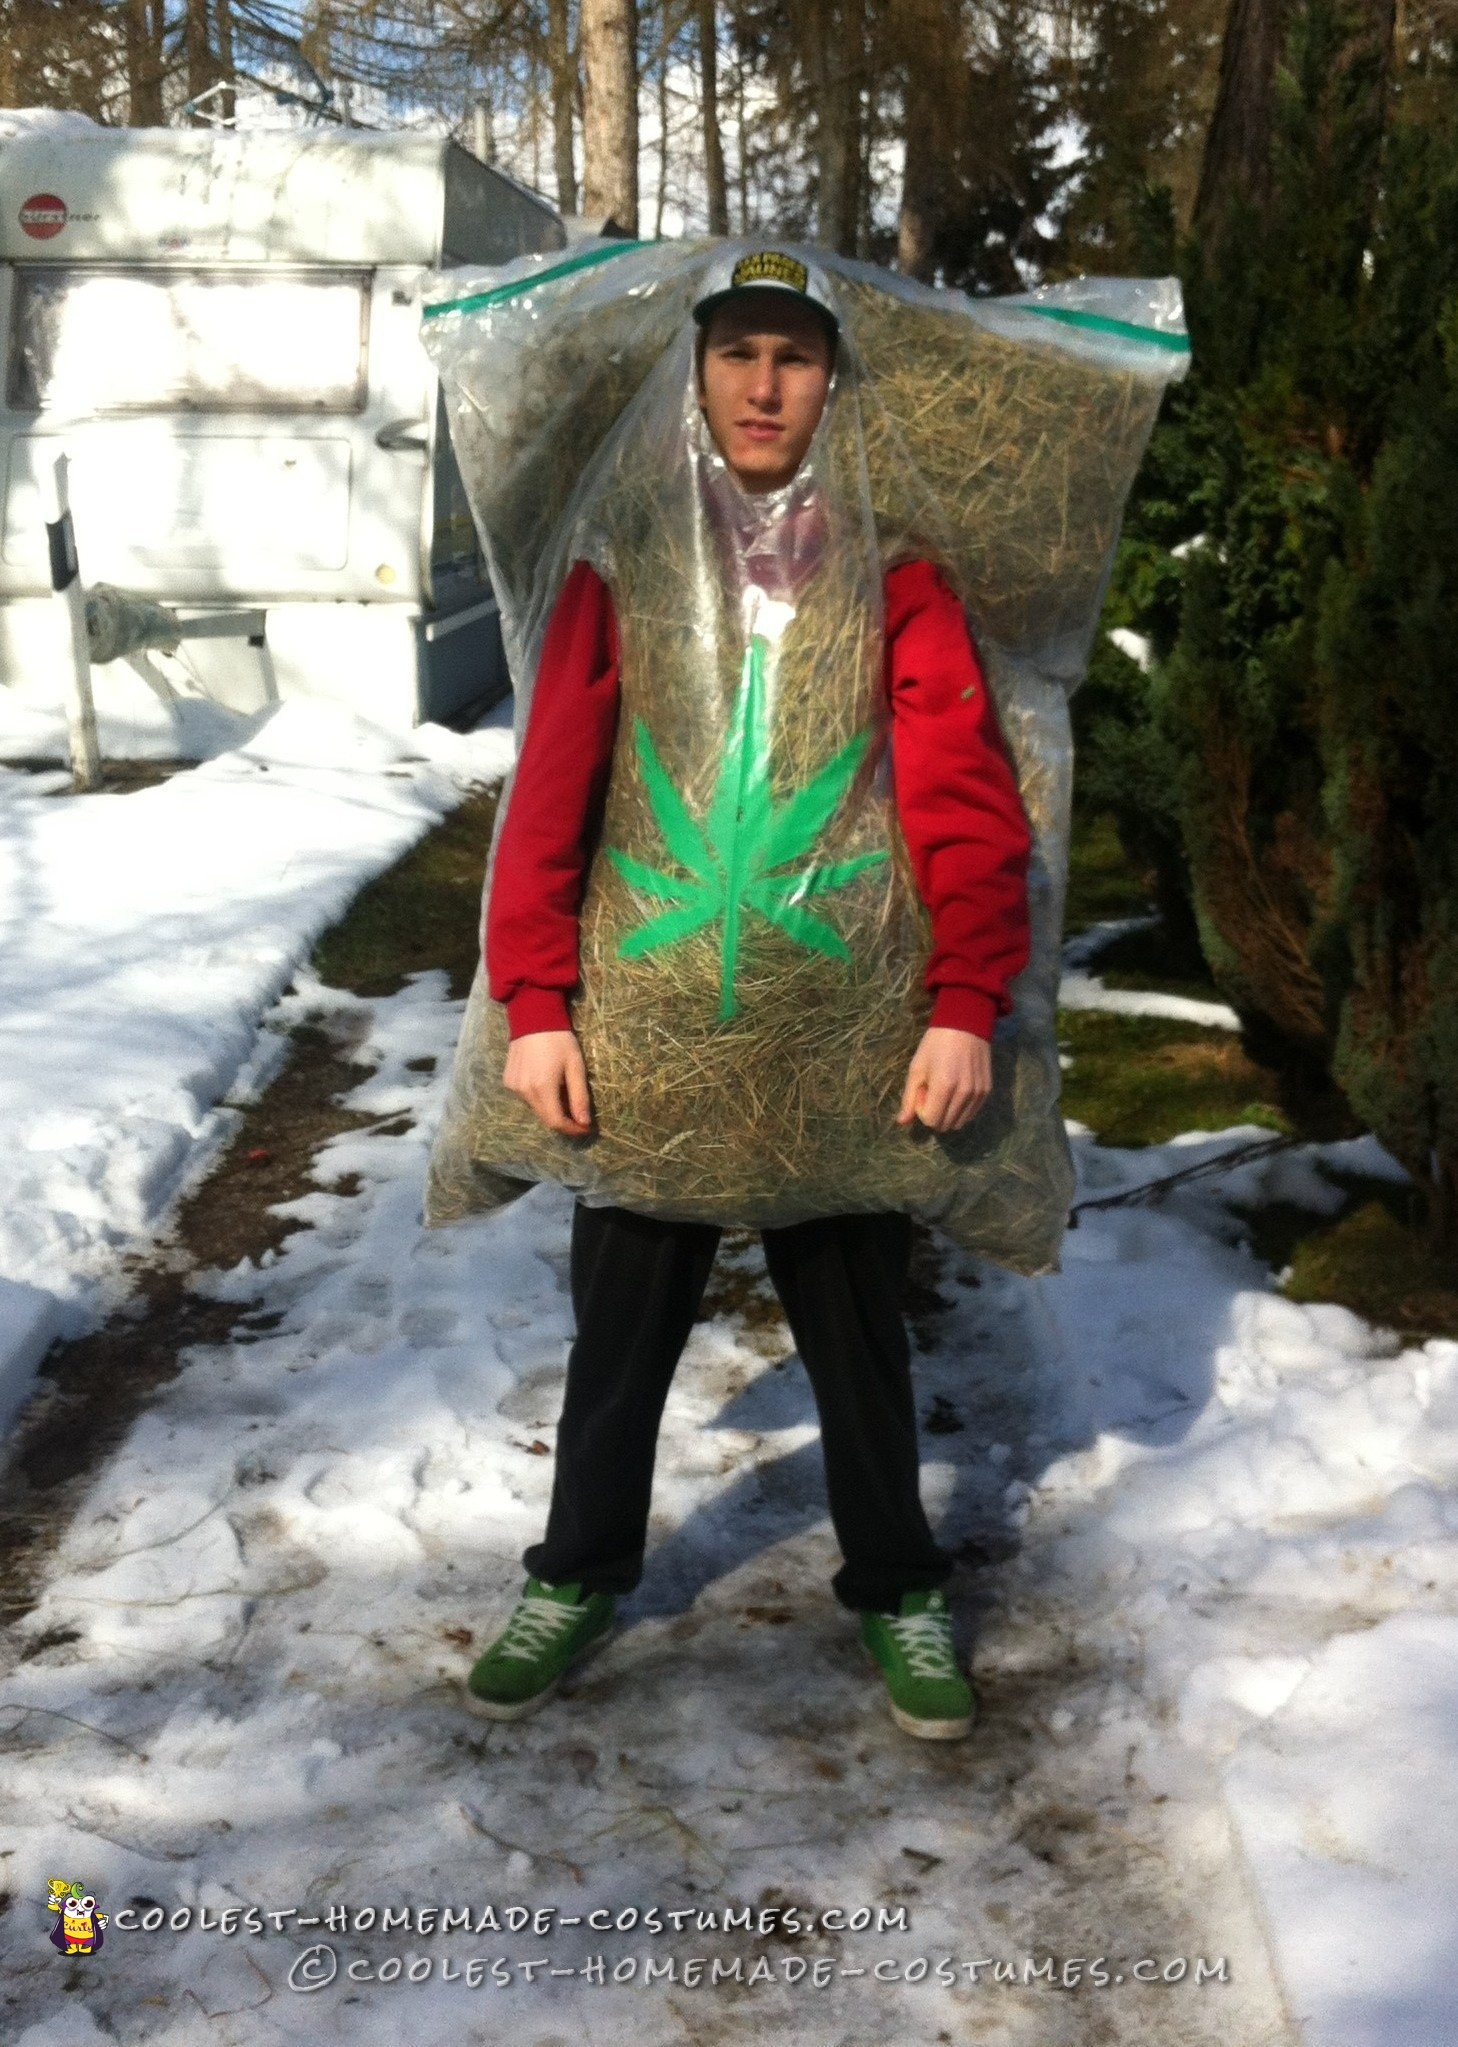 Child Toddler Hilarious Bag Of Weed Costume!